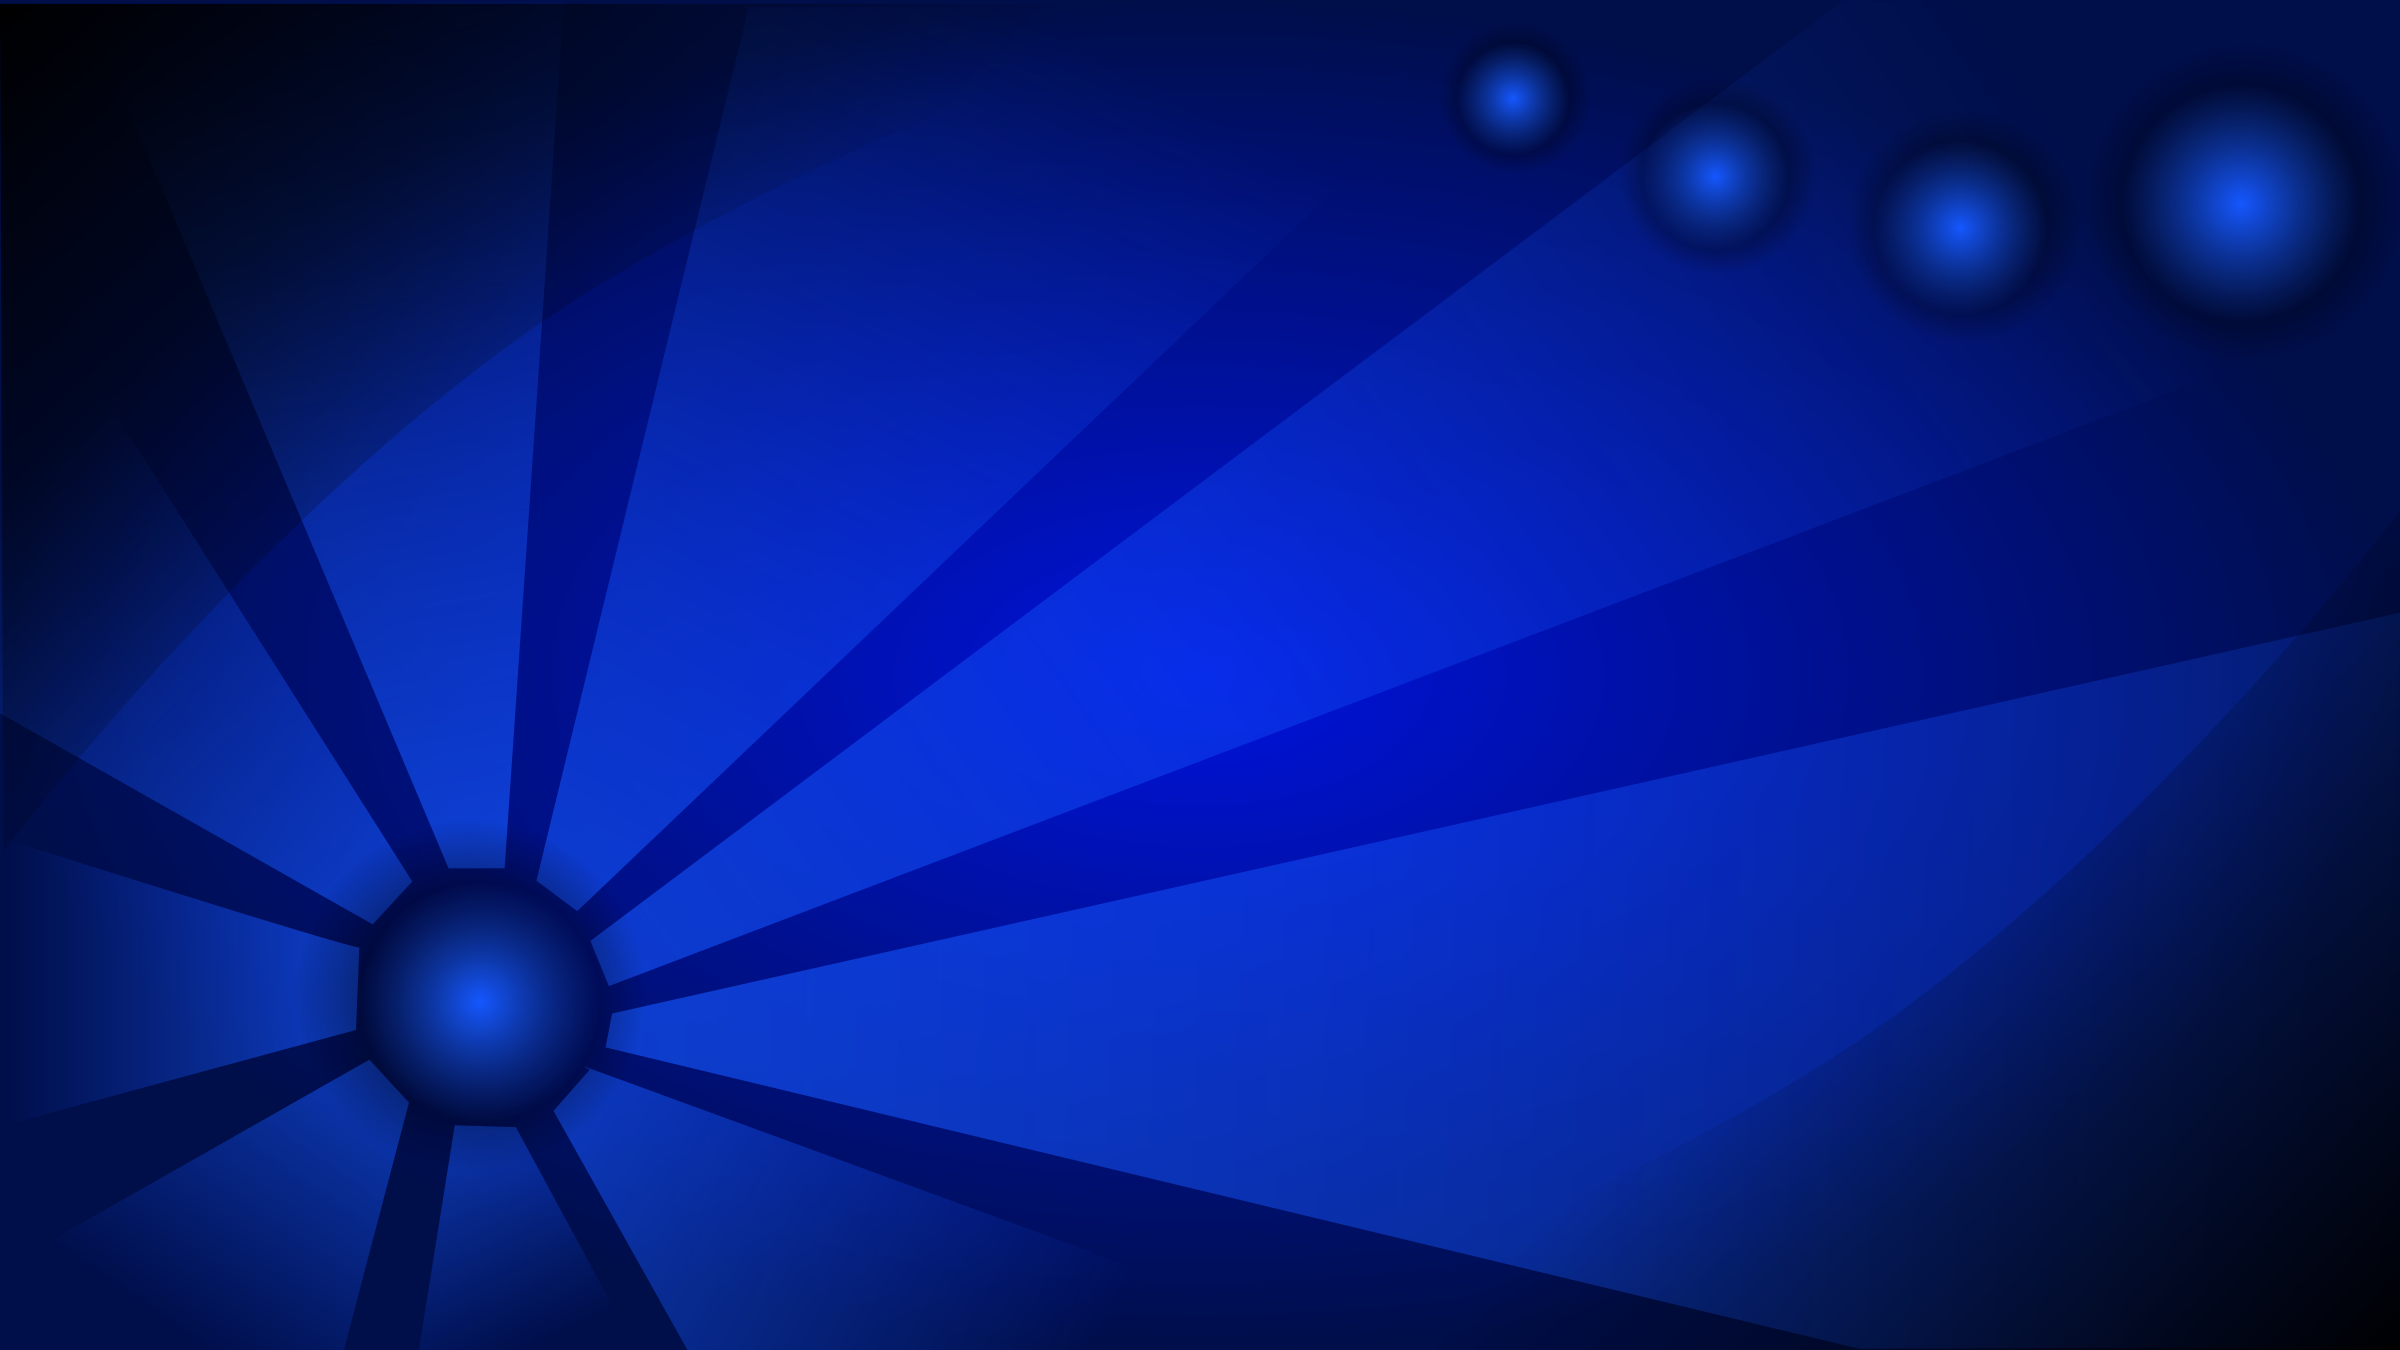 Blue Abstract Wallpaper by mystica